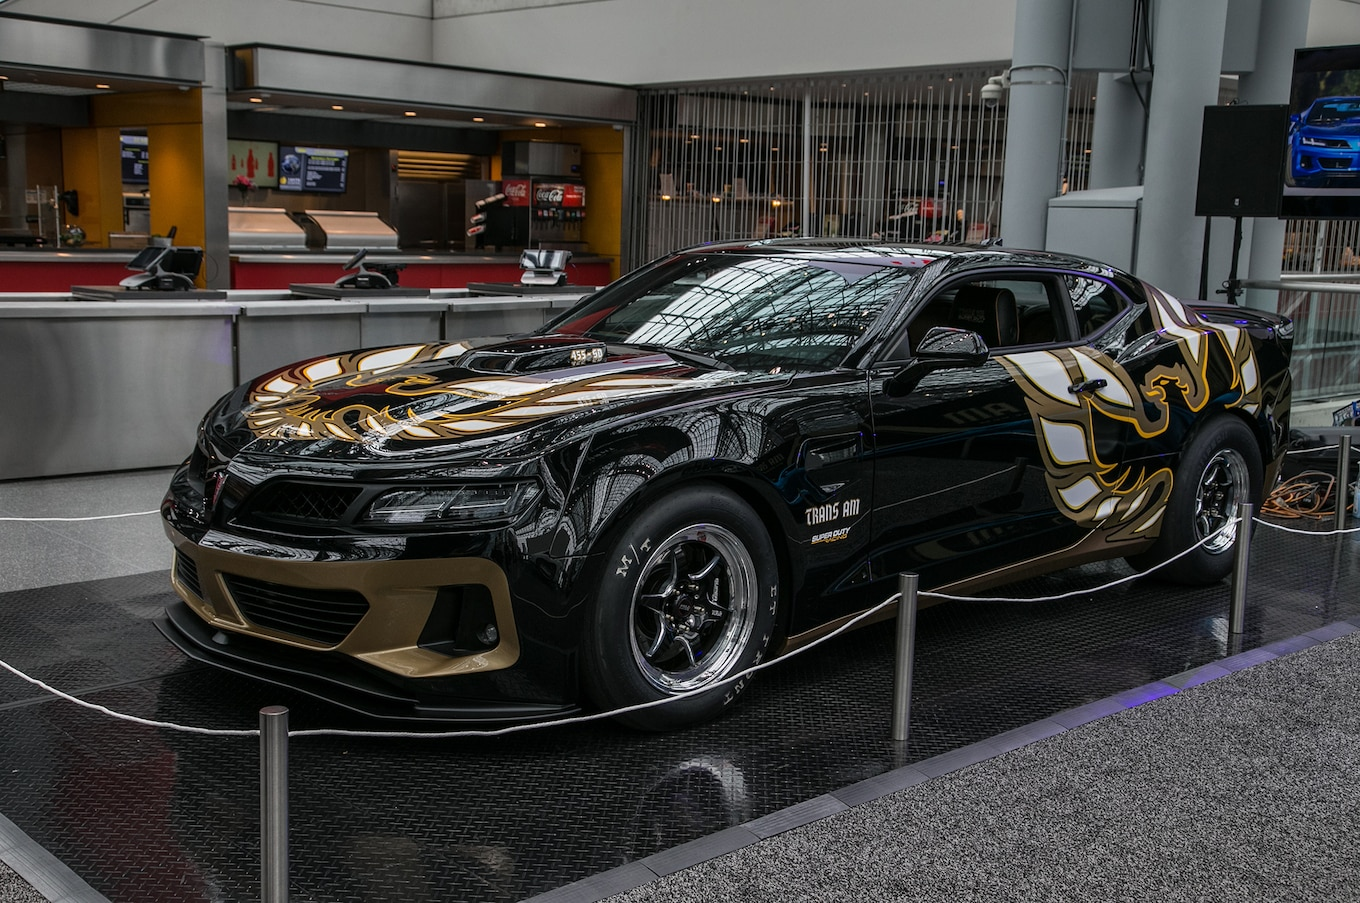 59 All New 2019 Pontiac Trans Am Review